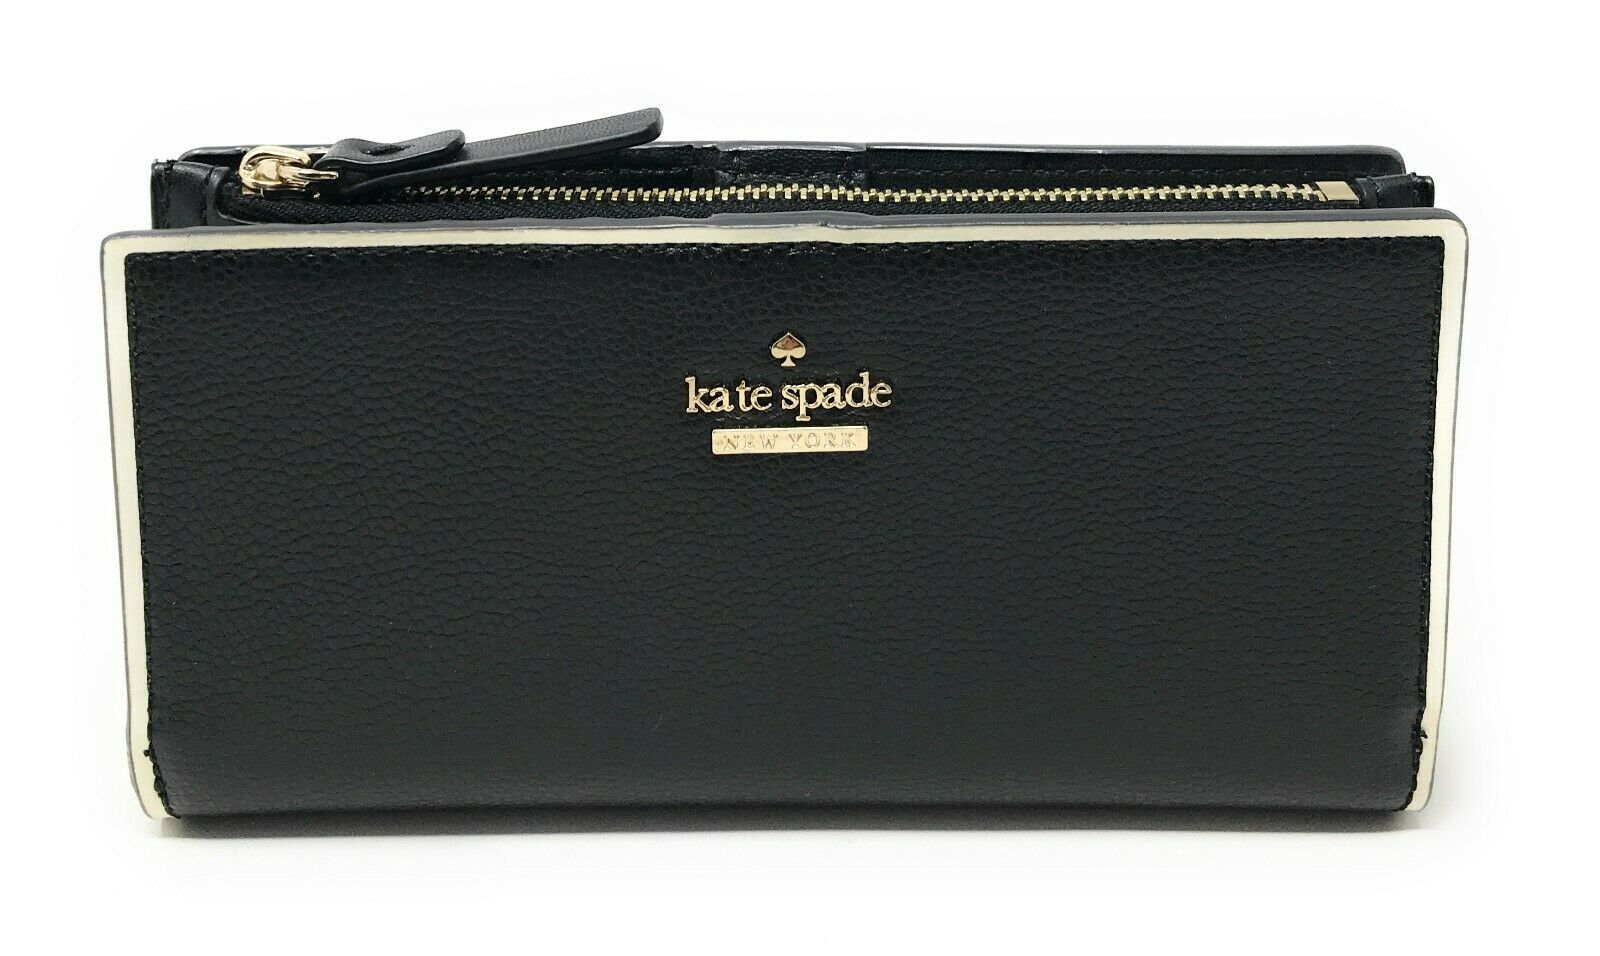 Kate Spade Braylon Patterson Drive Painted Edge Leather Wallet WLRU5392 $139